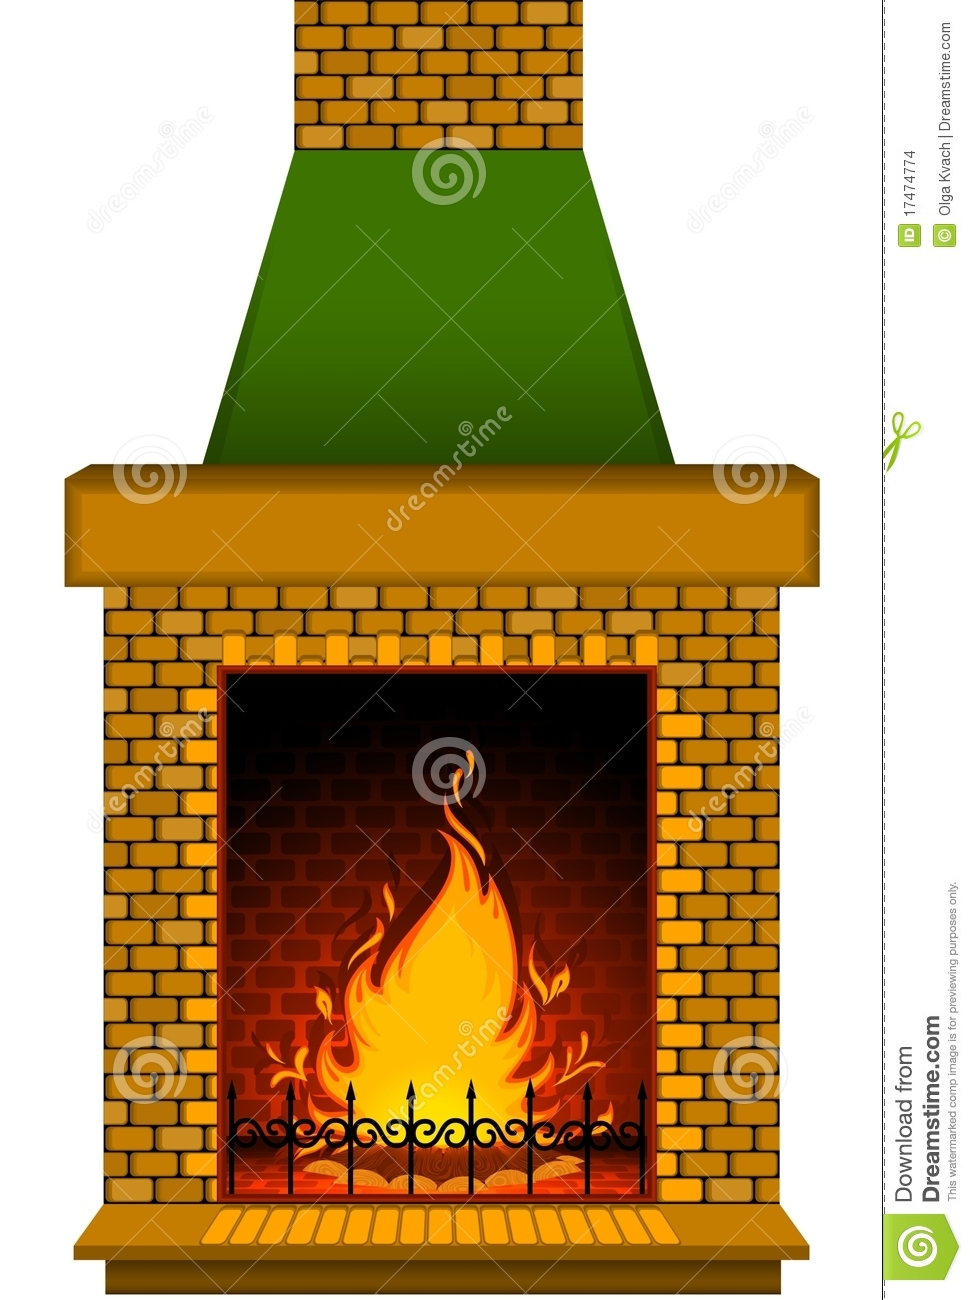 Stock Images Cartoon Stone Fire Place Image17474774 moreover Gazebo Plans With Fireplace as well Covering For Outdoor Patios With Brick Walls 34826 additionally Purple Sofa Living Room Design likewise Festive Holiday Decor At Poco Diablo Resort In Sedona. on christmas fireplace decorations